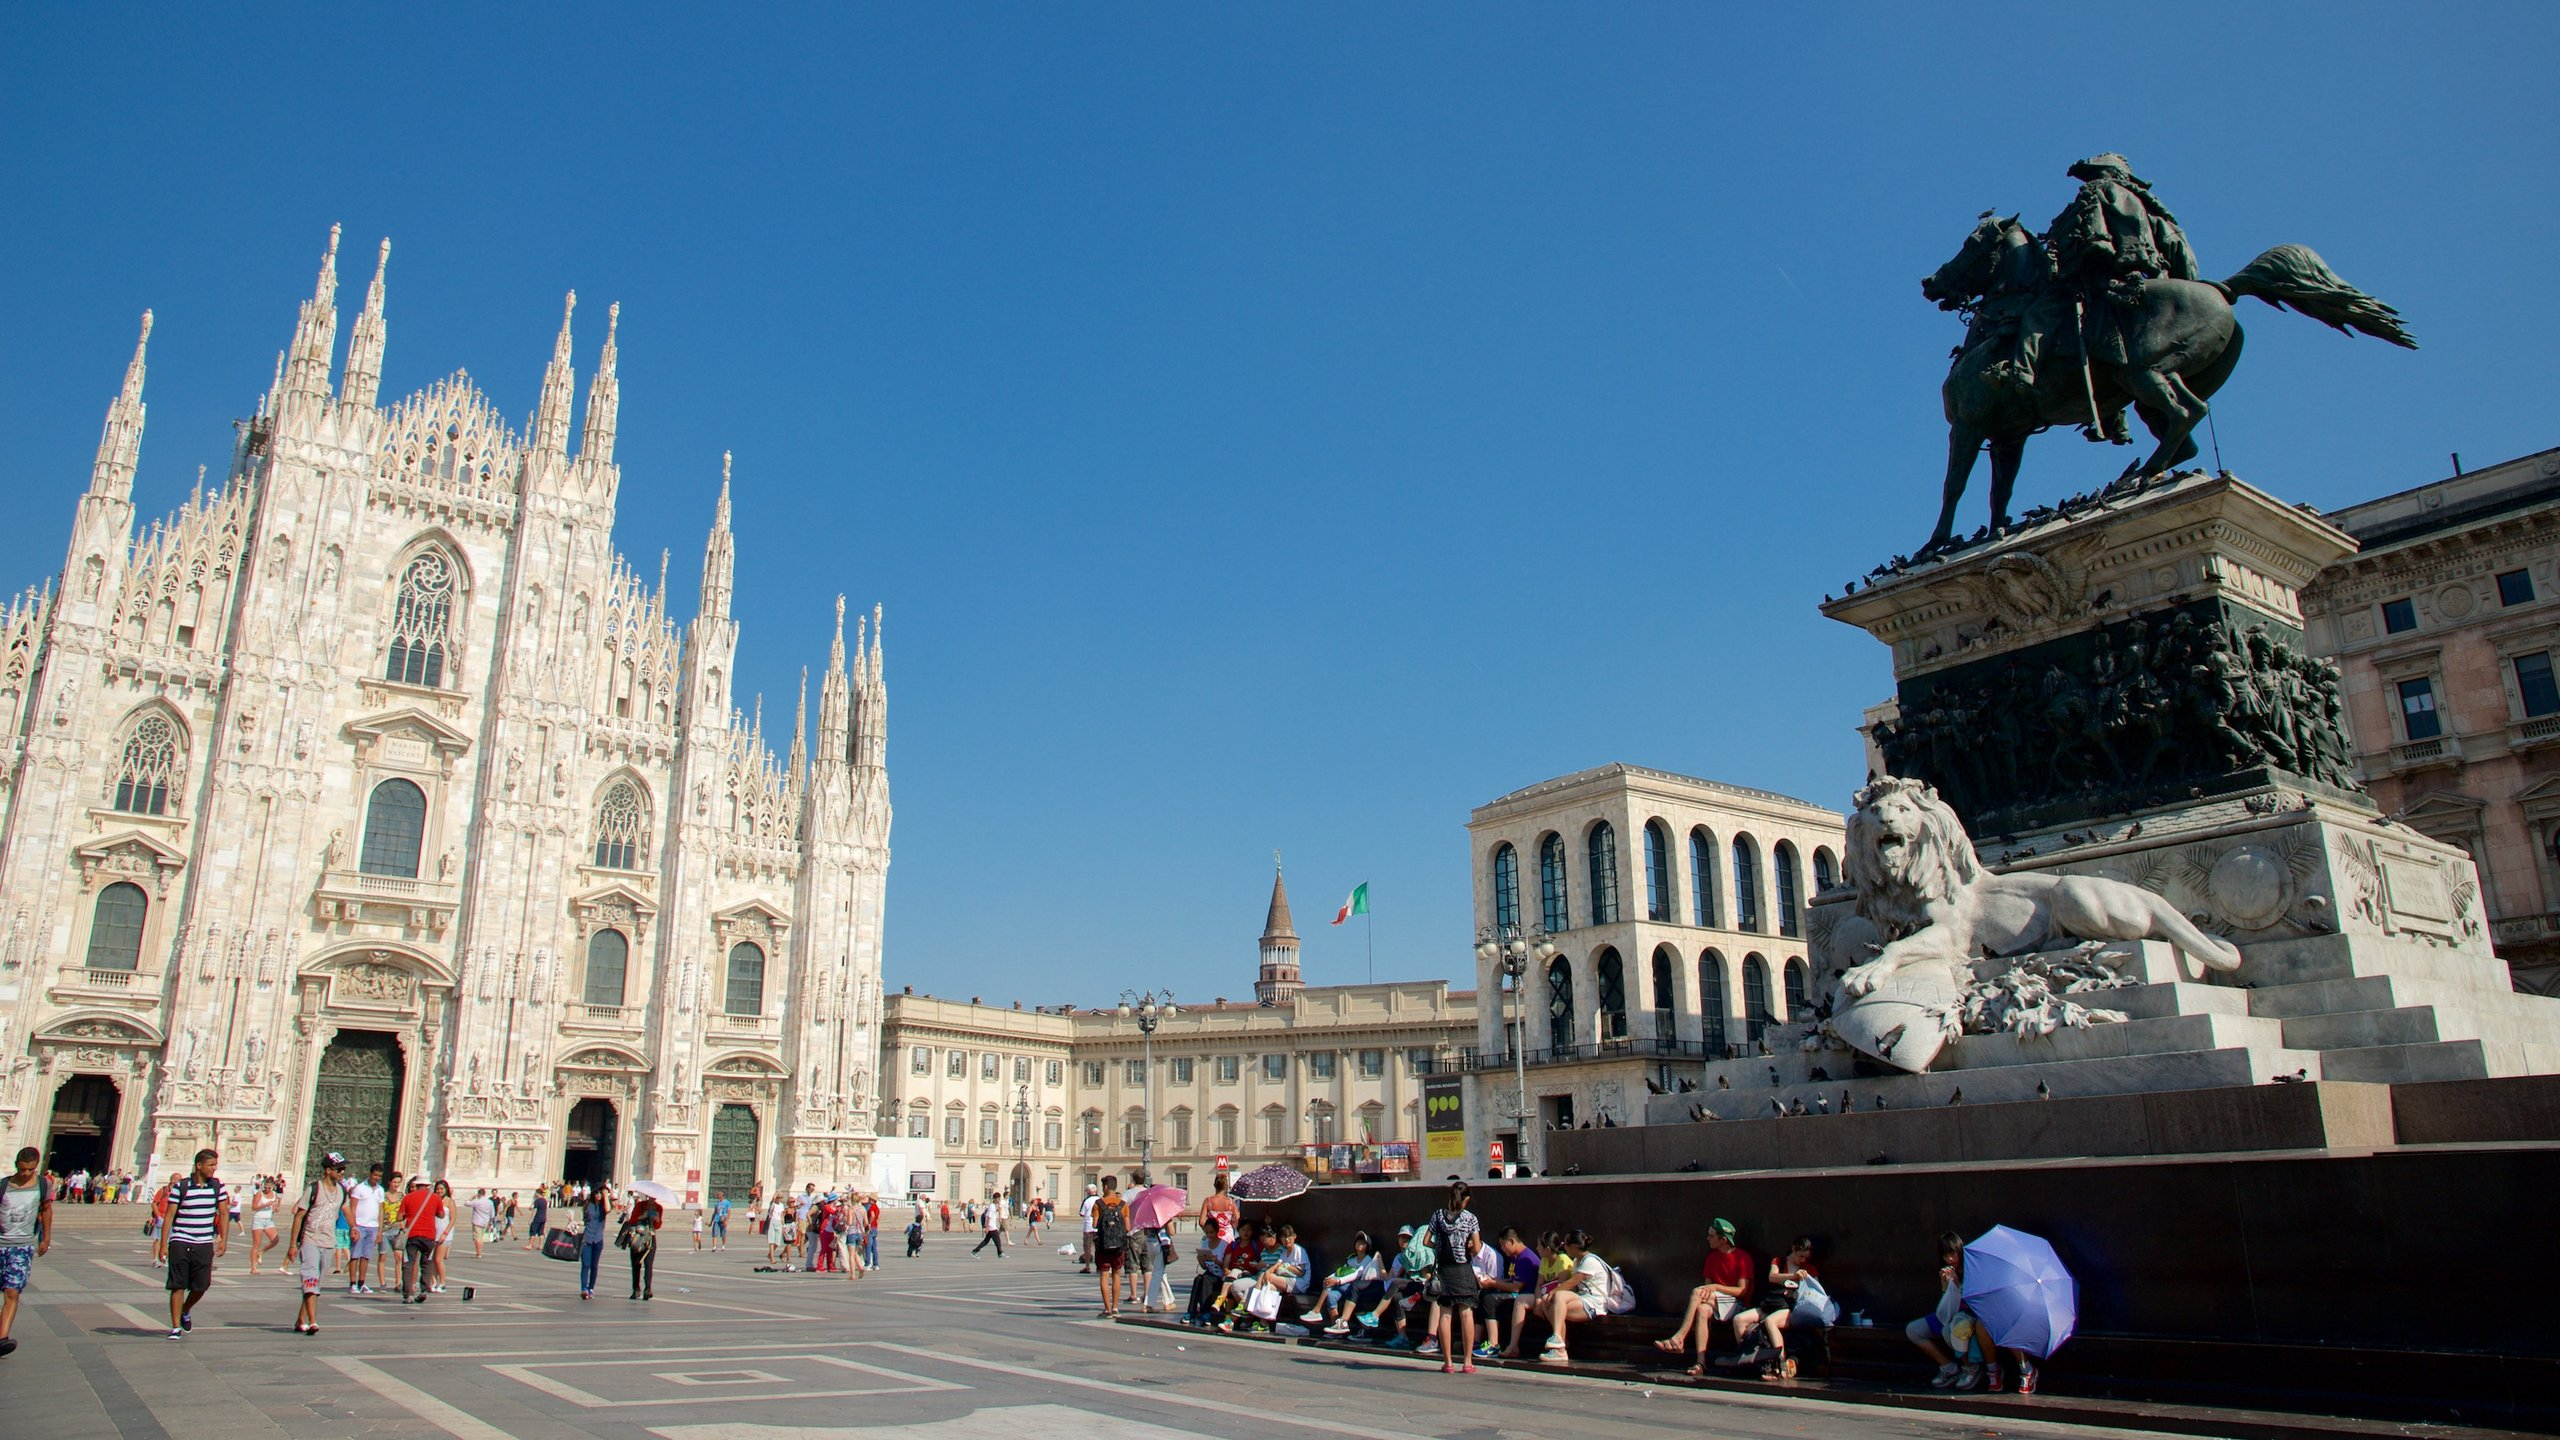 10 Best Hotels Closest To Piazza Del Duomo In Milan For 2019 Expedia